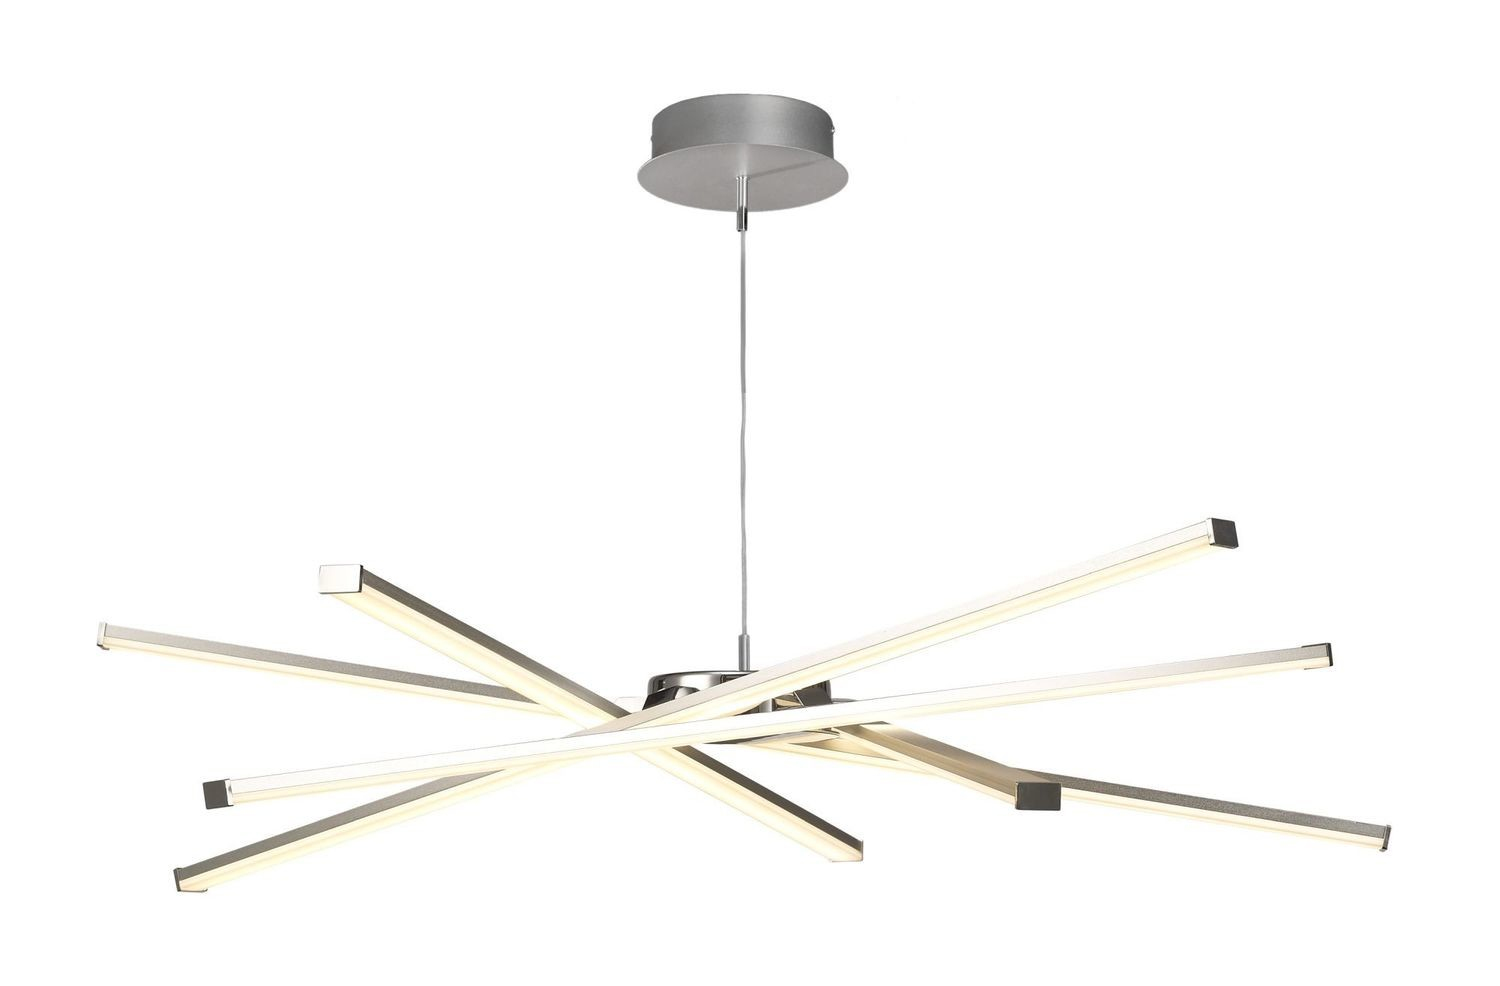 Star LED Pendant 69cm Round 42W 3000K, 3700lm, Silver/Frosted Acrylic/Polished Chrome, 3yrs Warranty